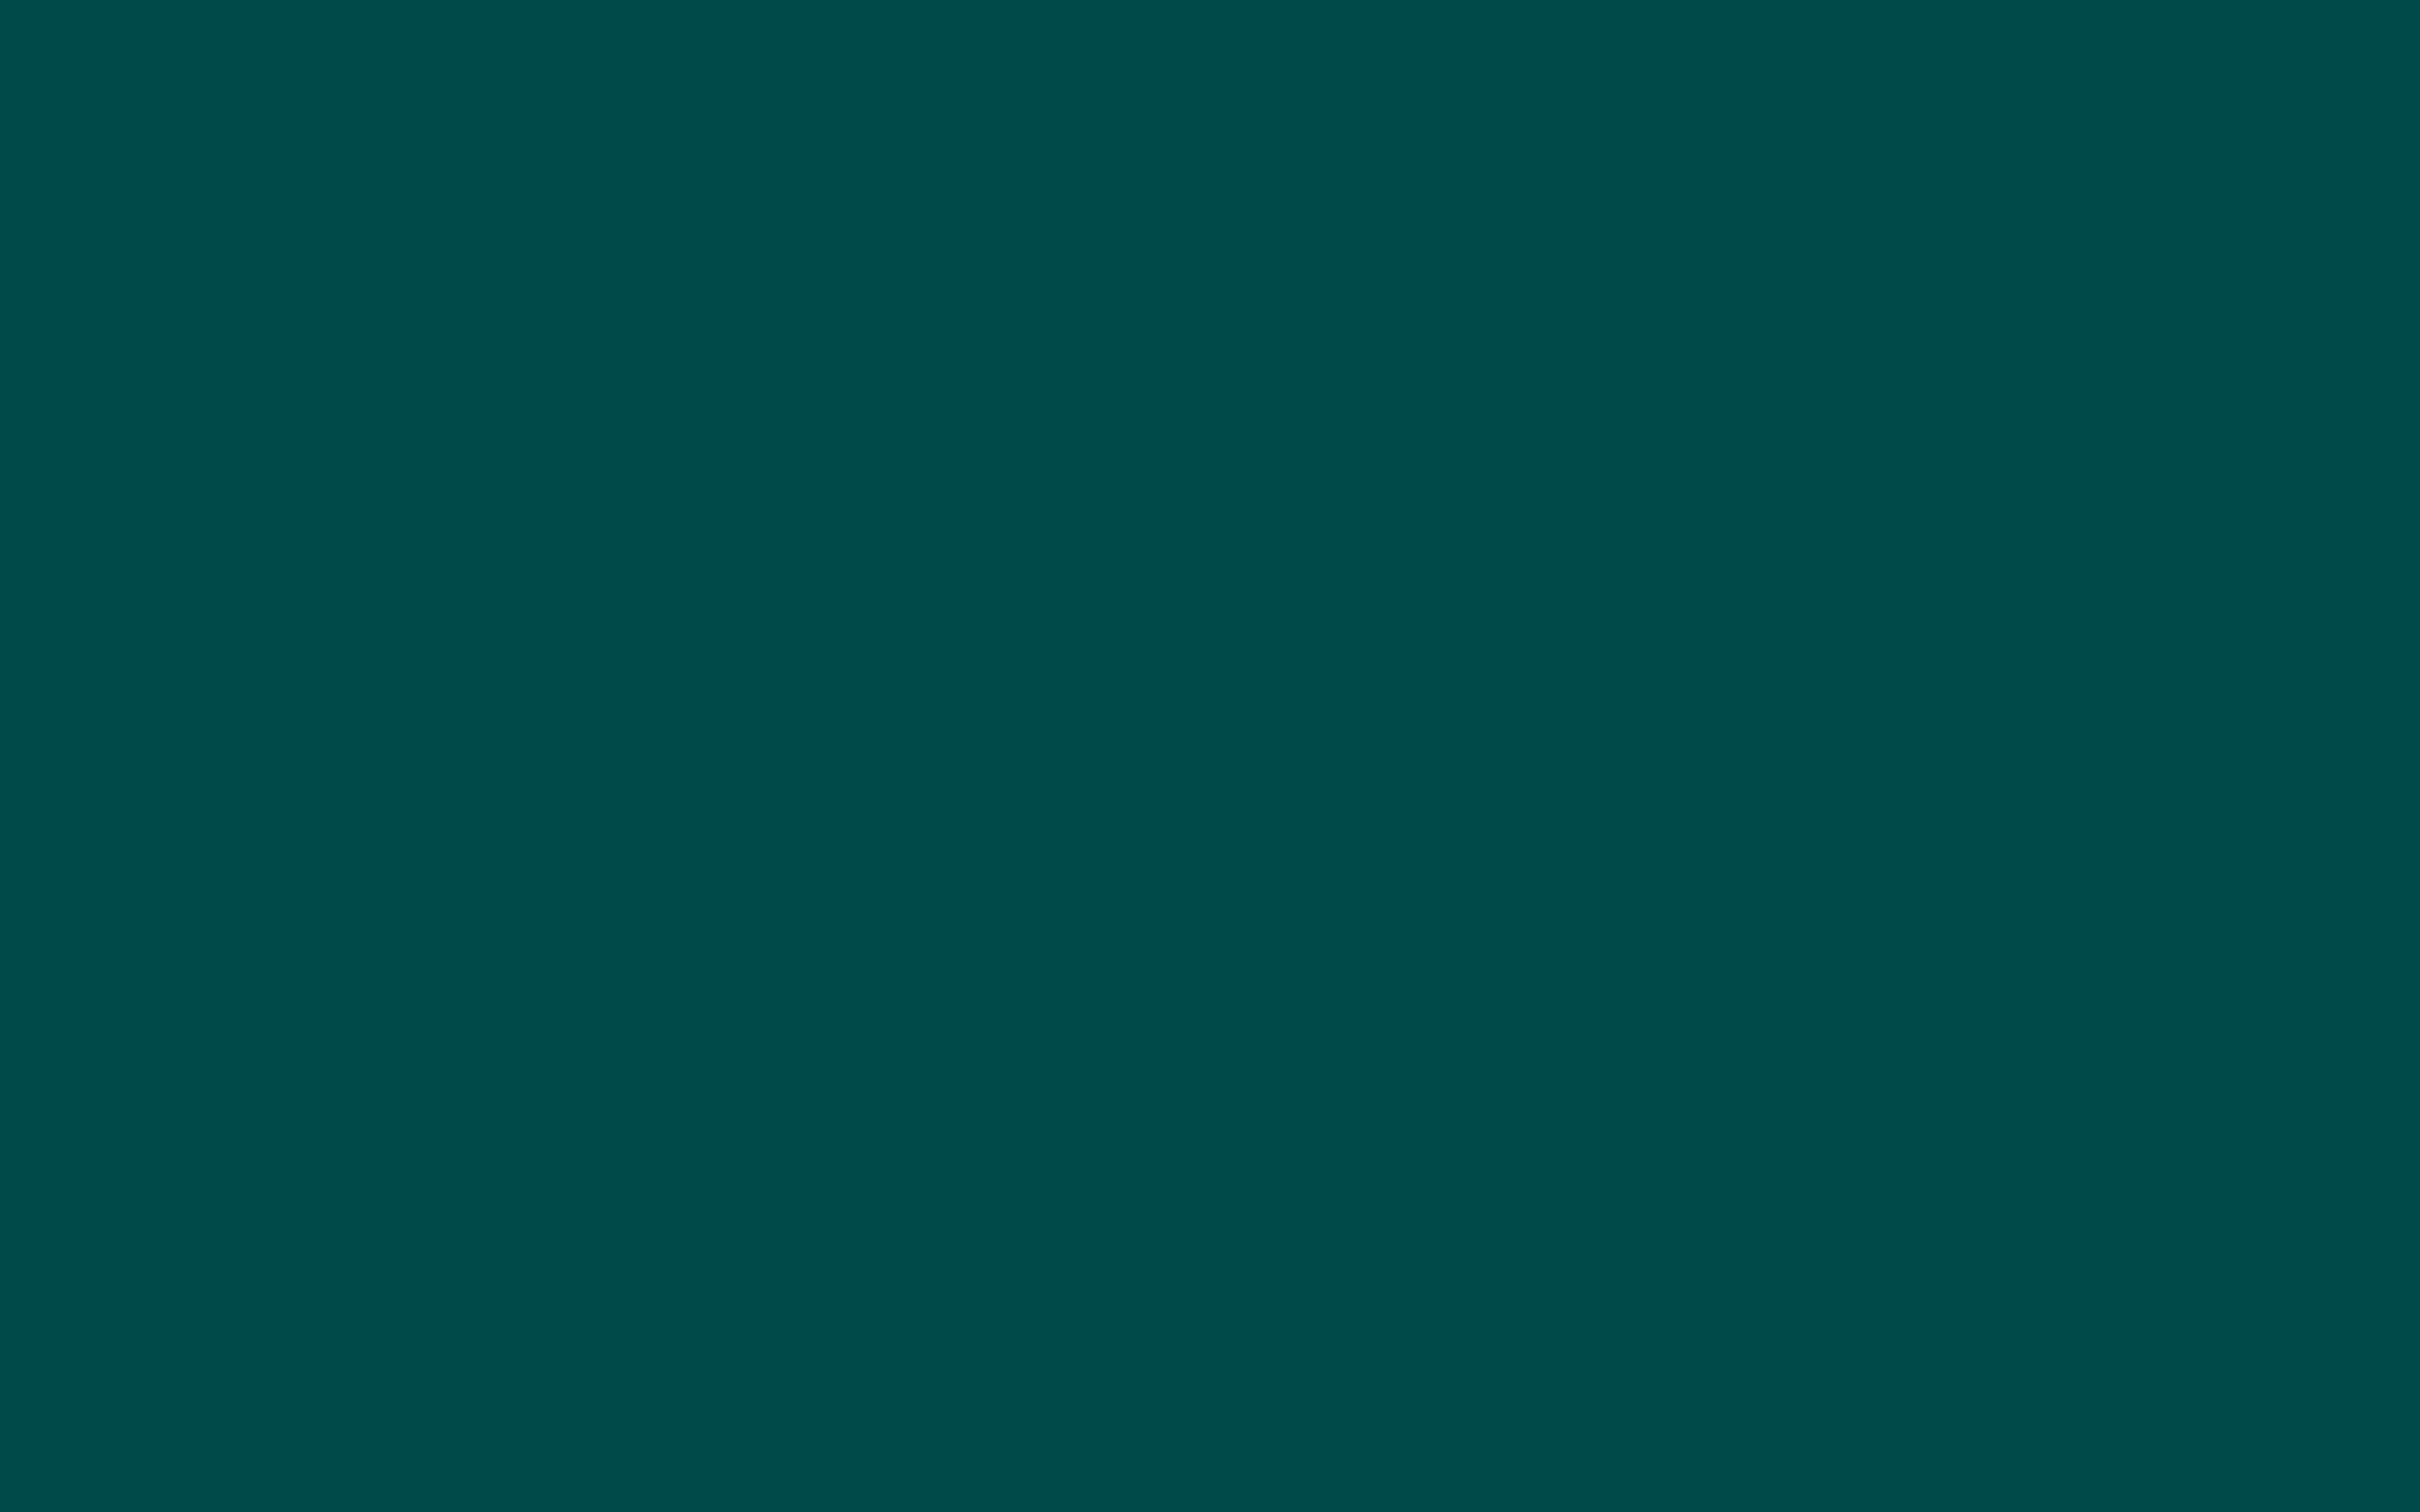 2880x1800 Deep Jungle Green Solid Color Background